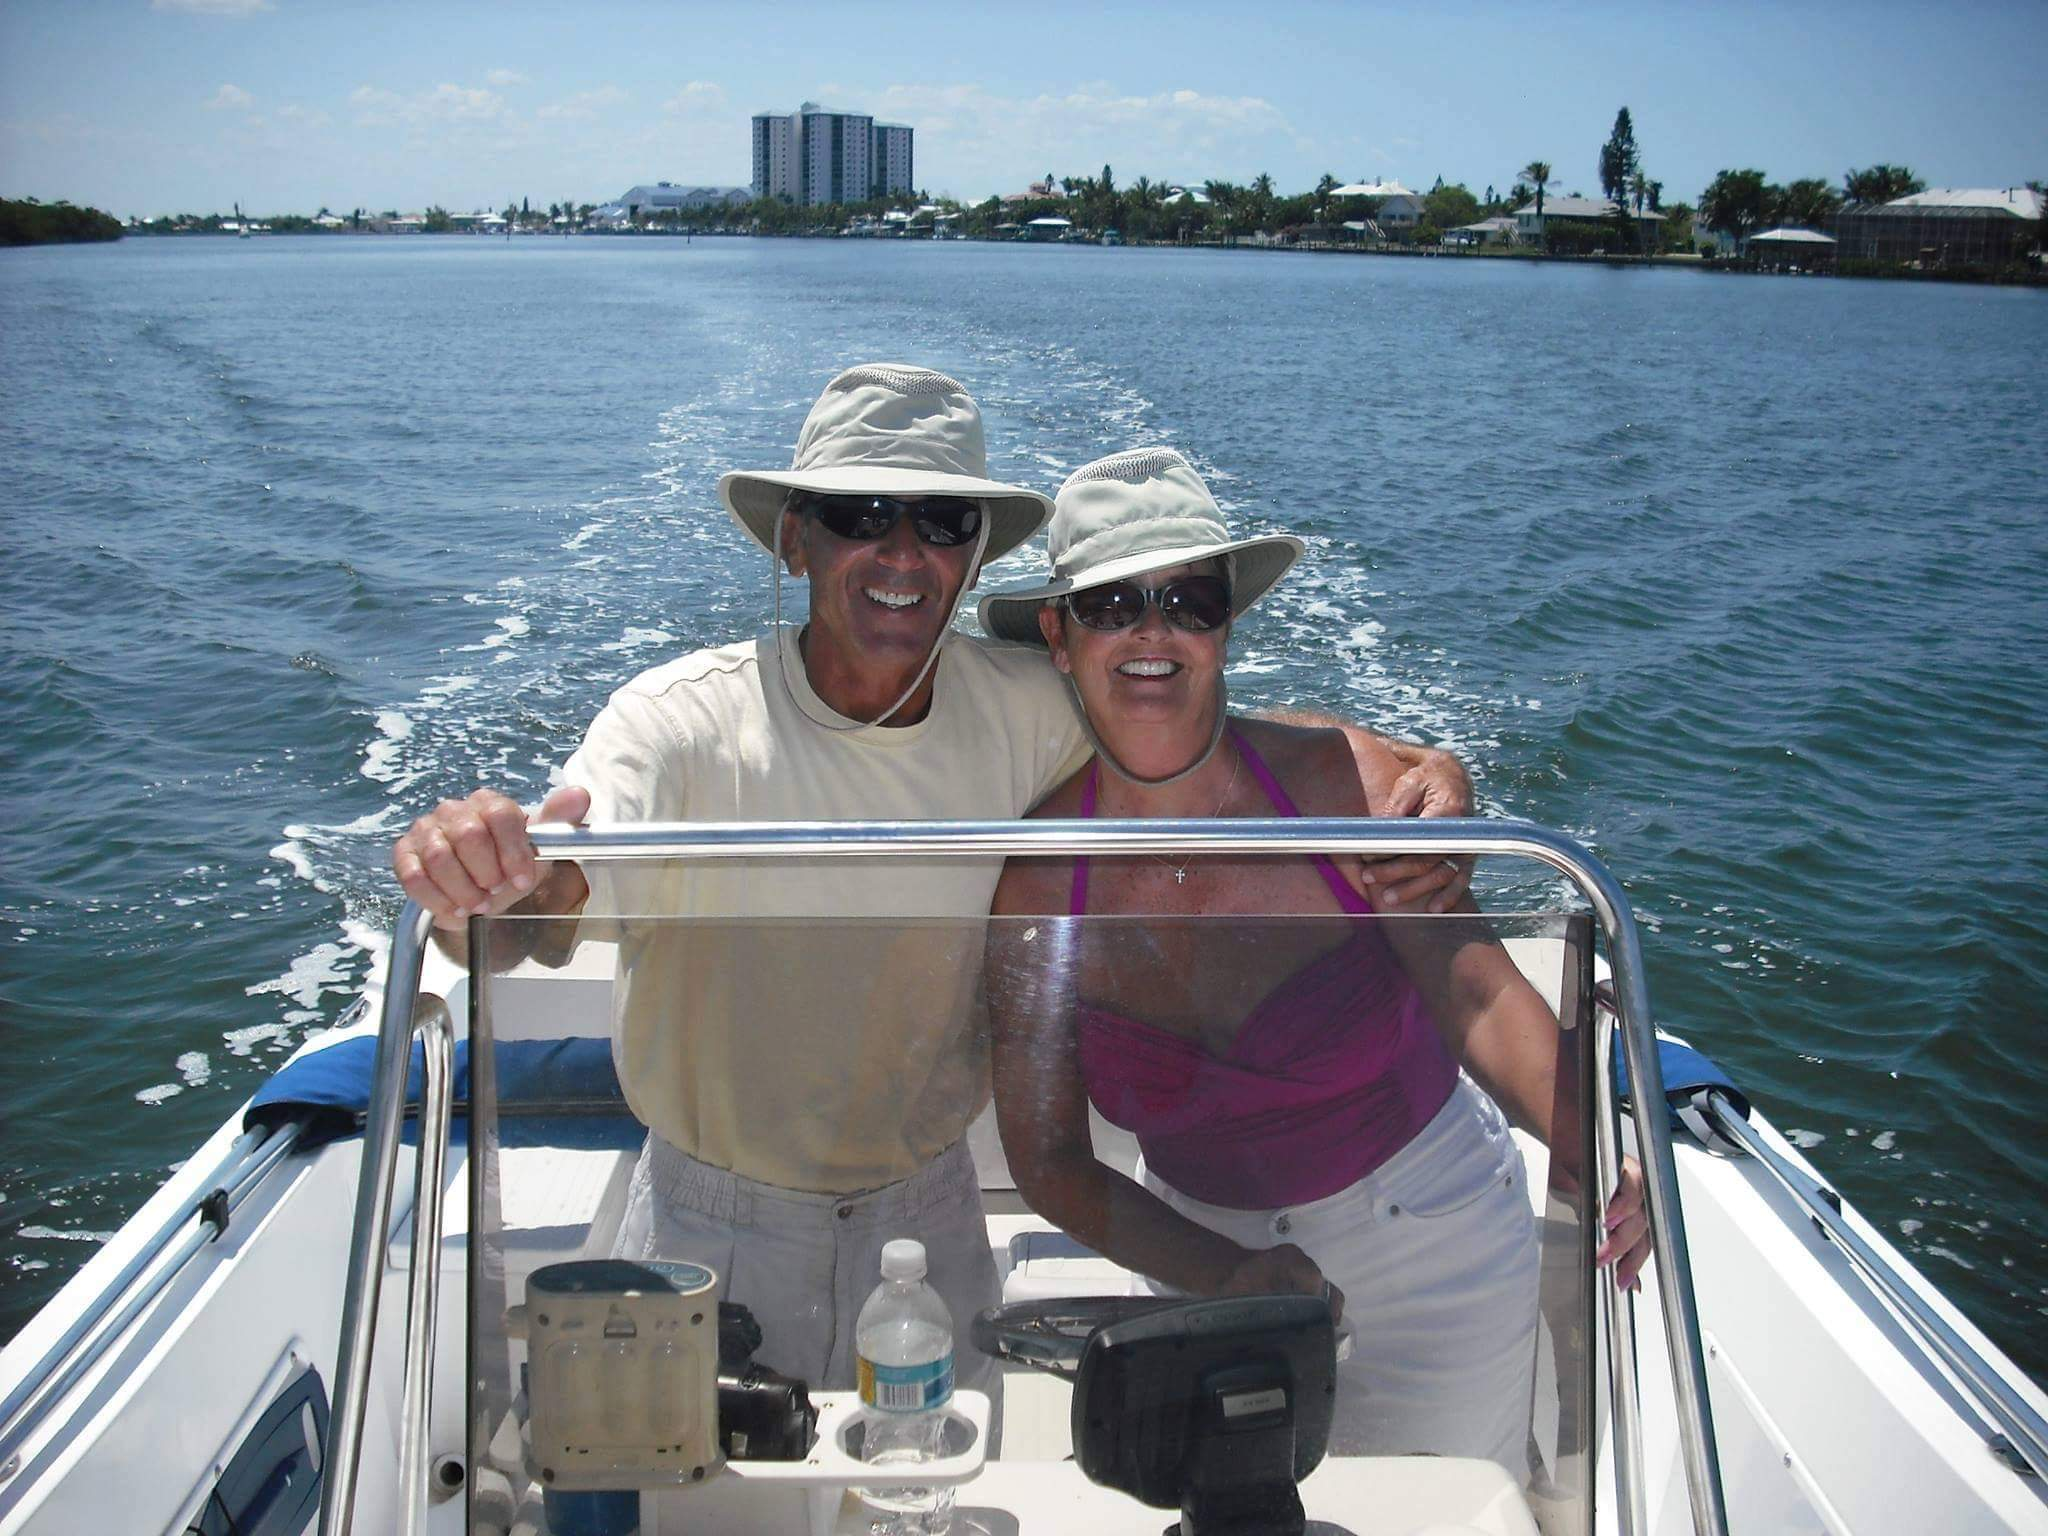 Mike & Marsha Namey together forever. Picture was taken on the Estero River where they lived, loved and fished together. RIP dear friends. ❤️